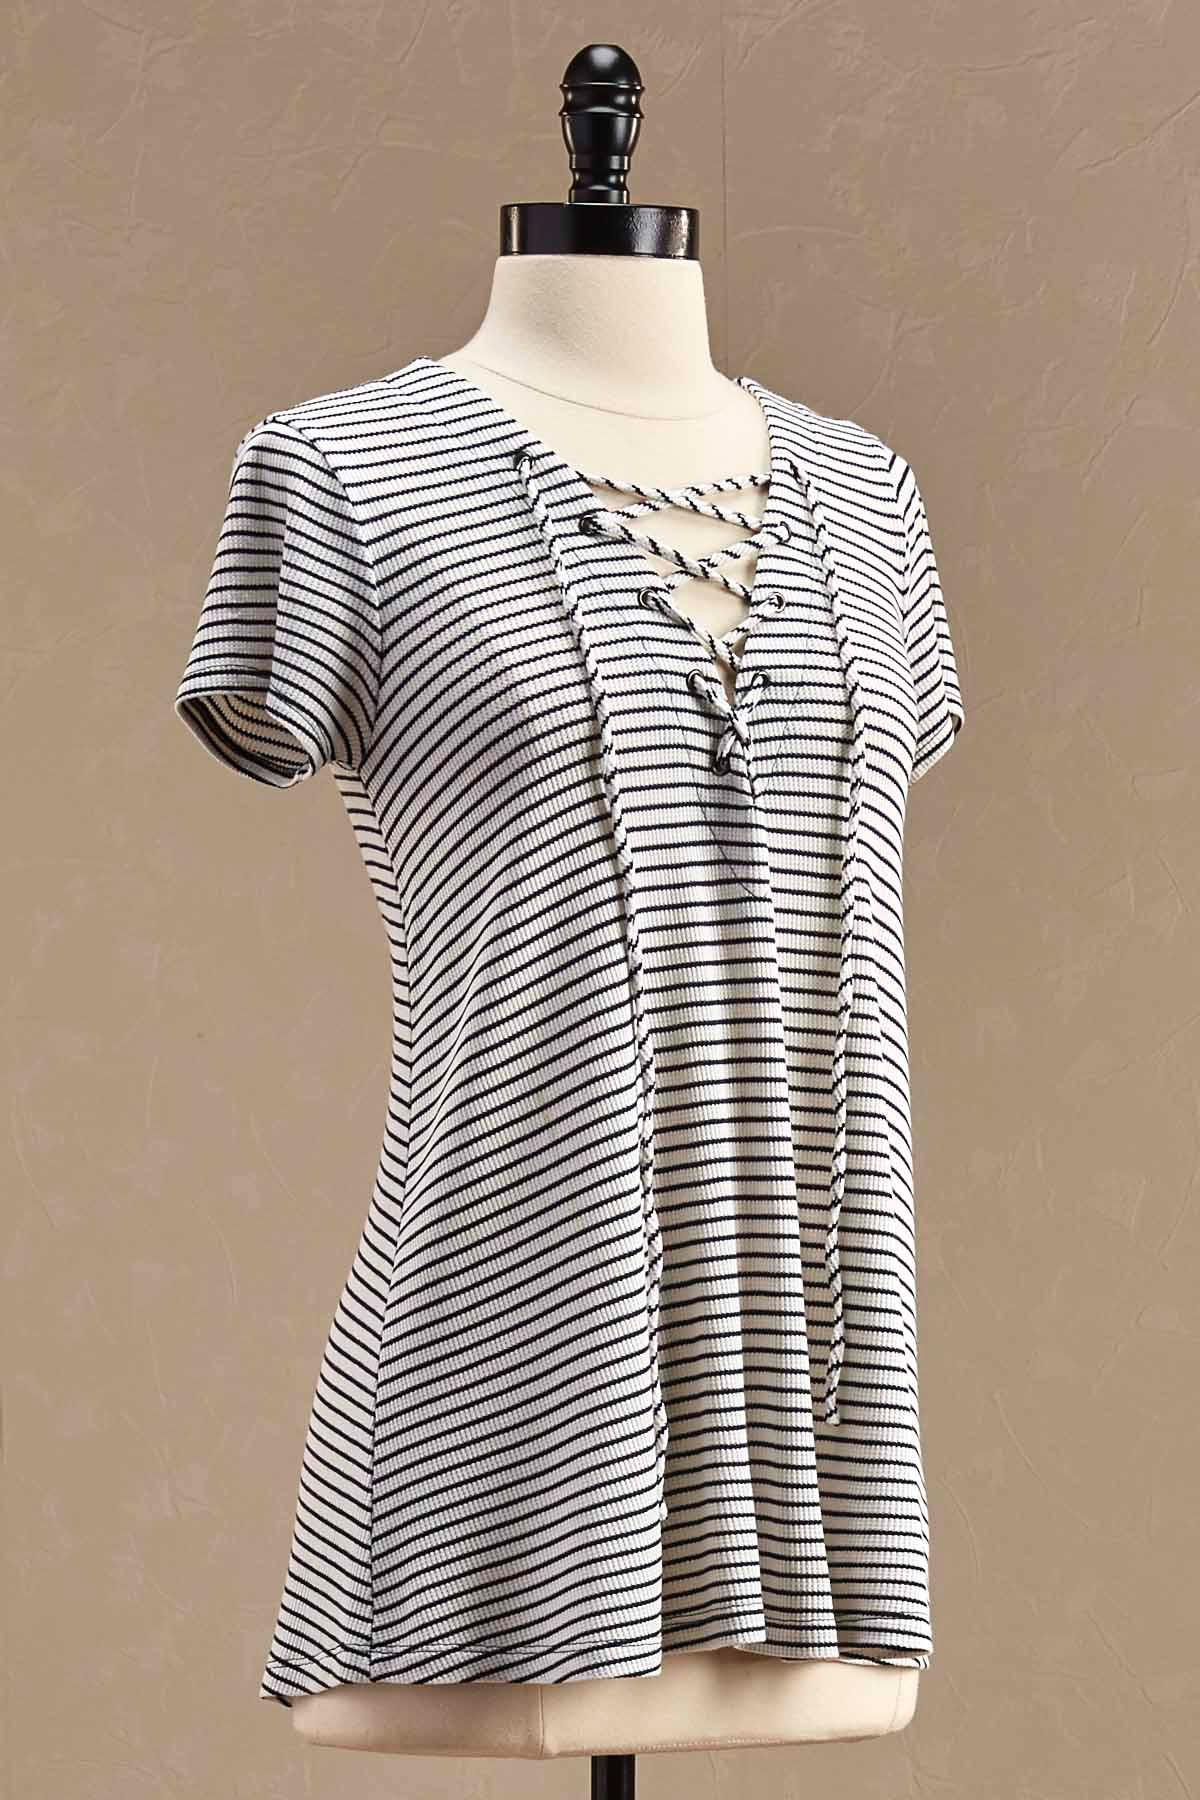 Ribbed Lace Up Striped Swing Top